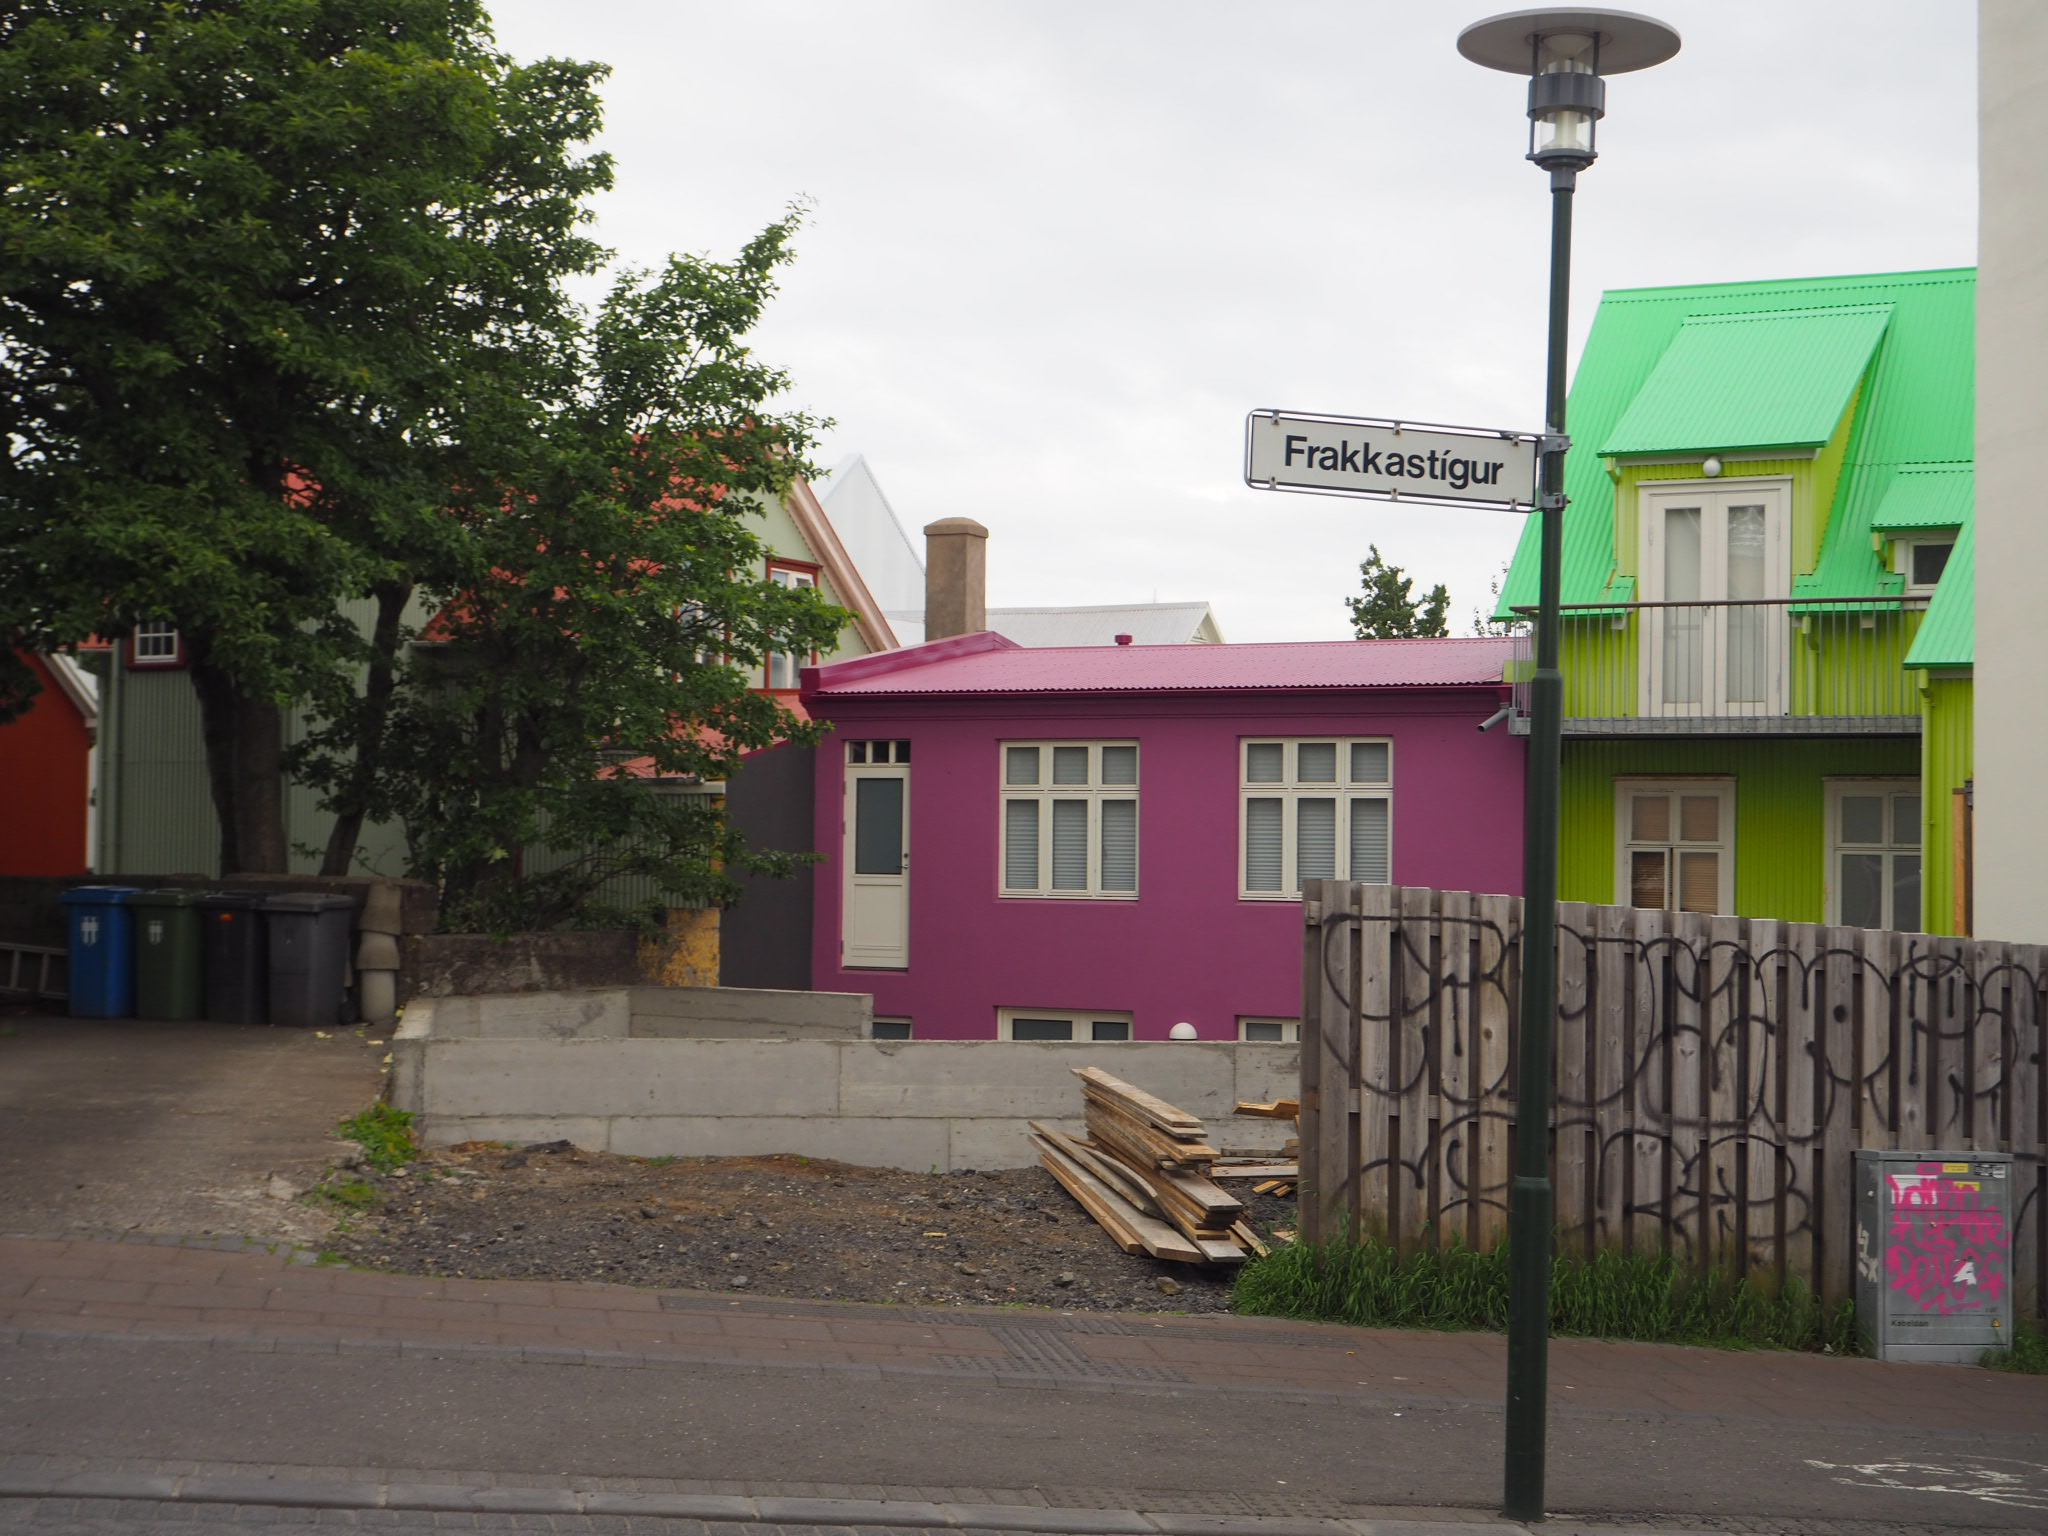 Turning up Frakkastígur, I found my first taste of the colourful buildings that Reykjavik is known for.